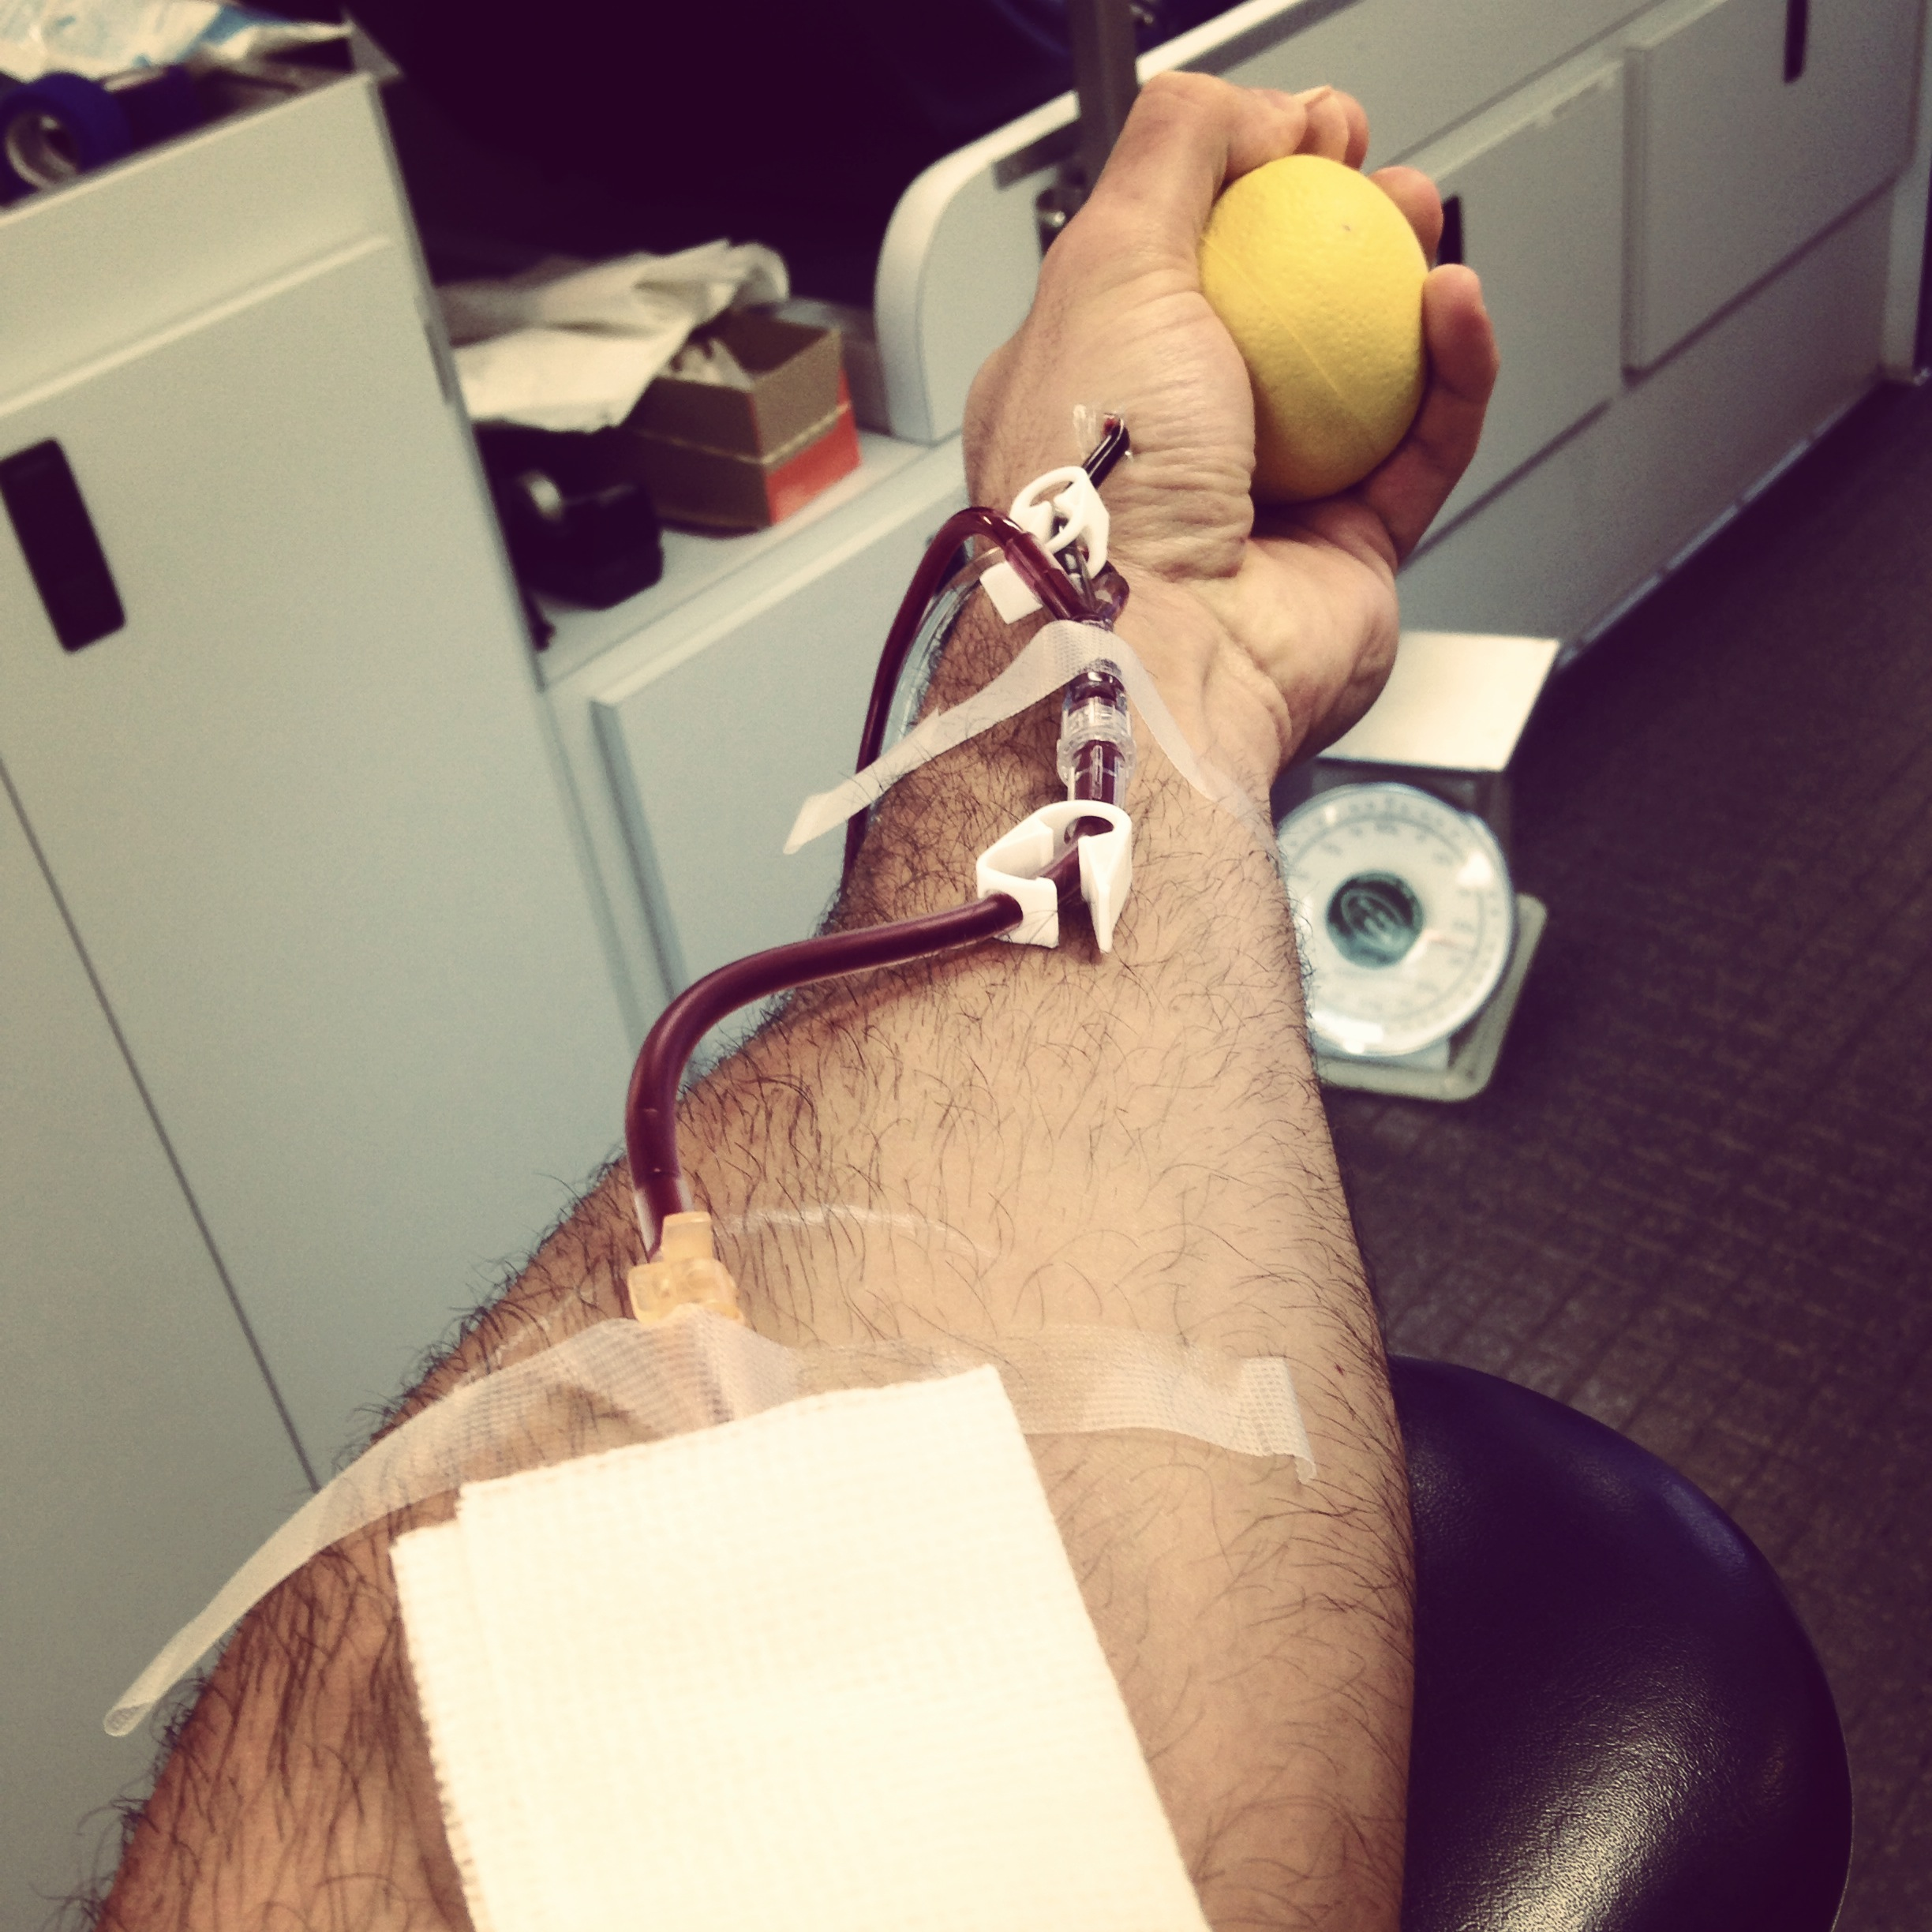 My Selfish Reason for Donating Blood